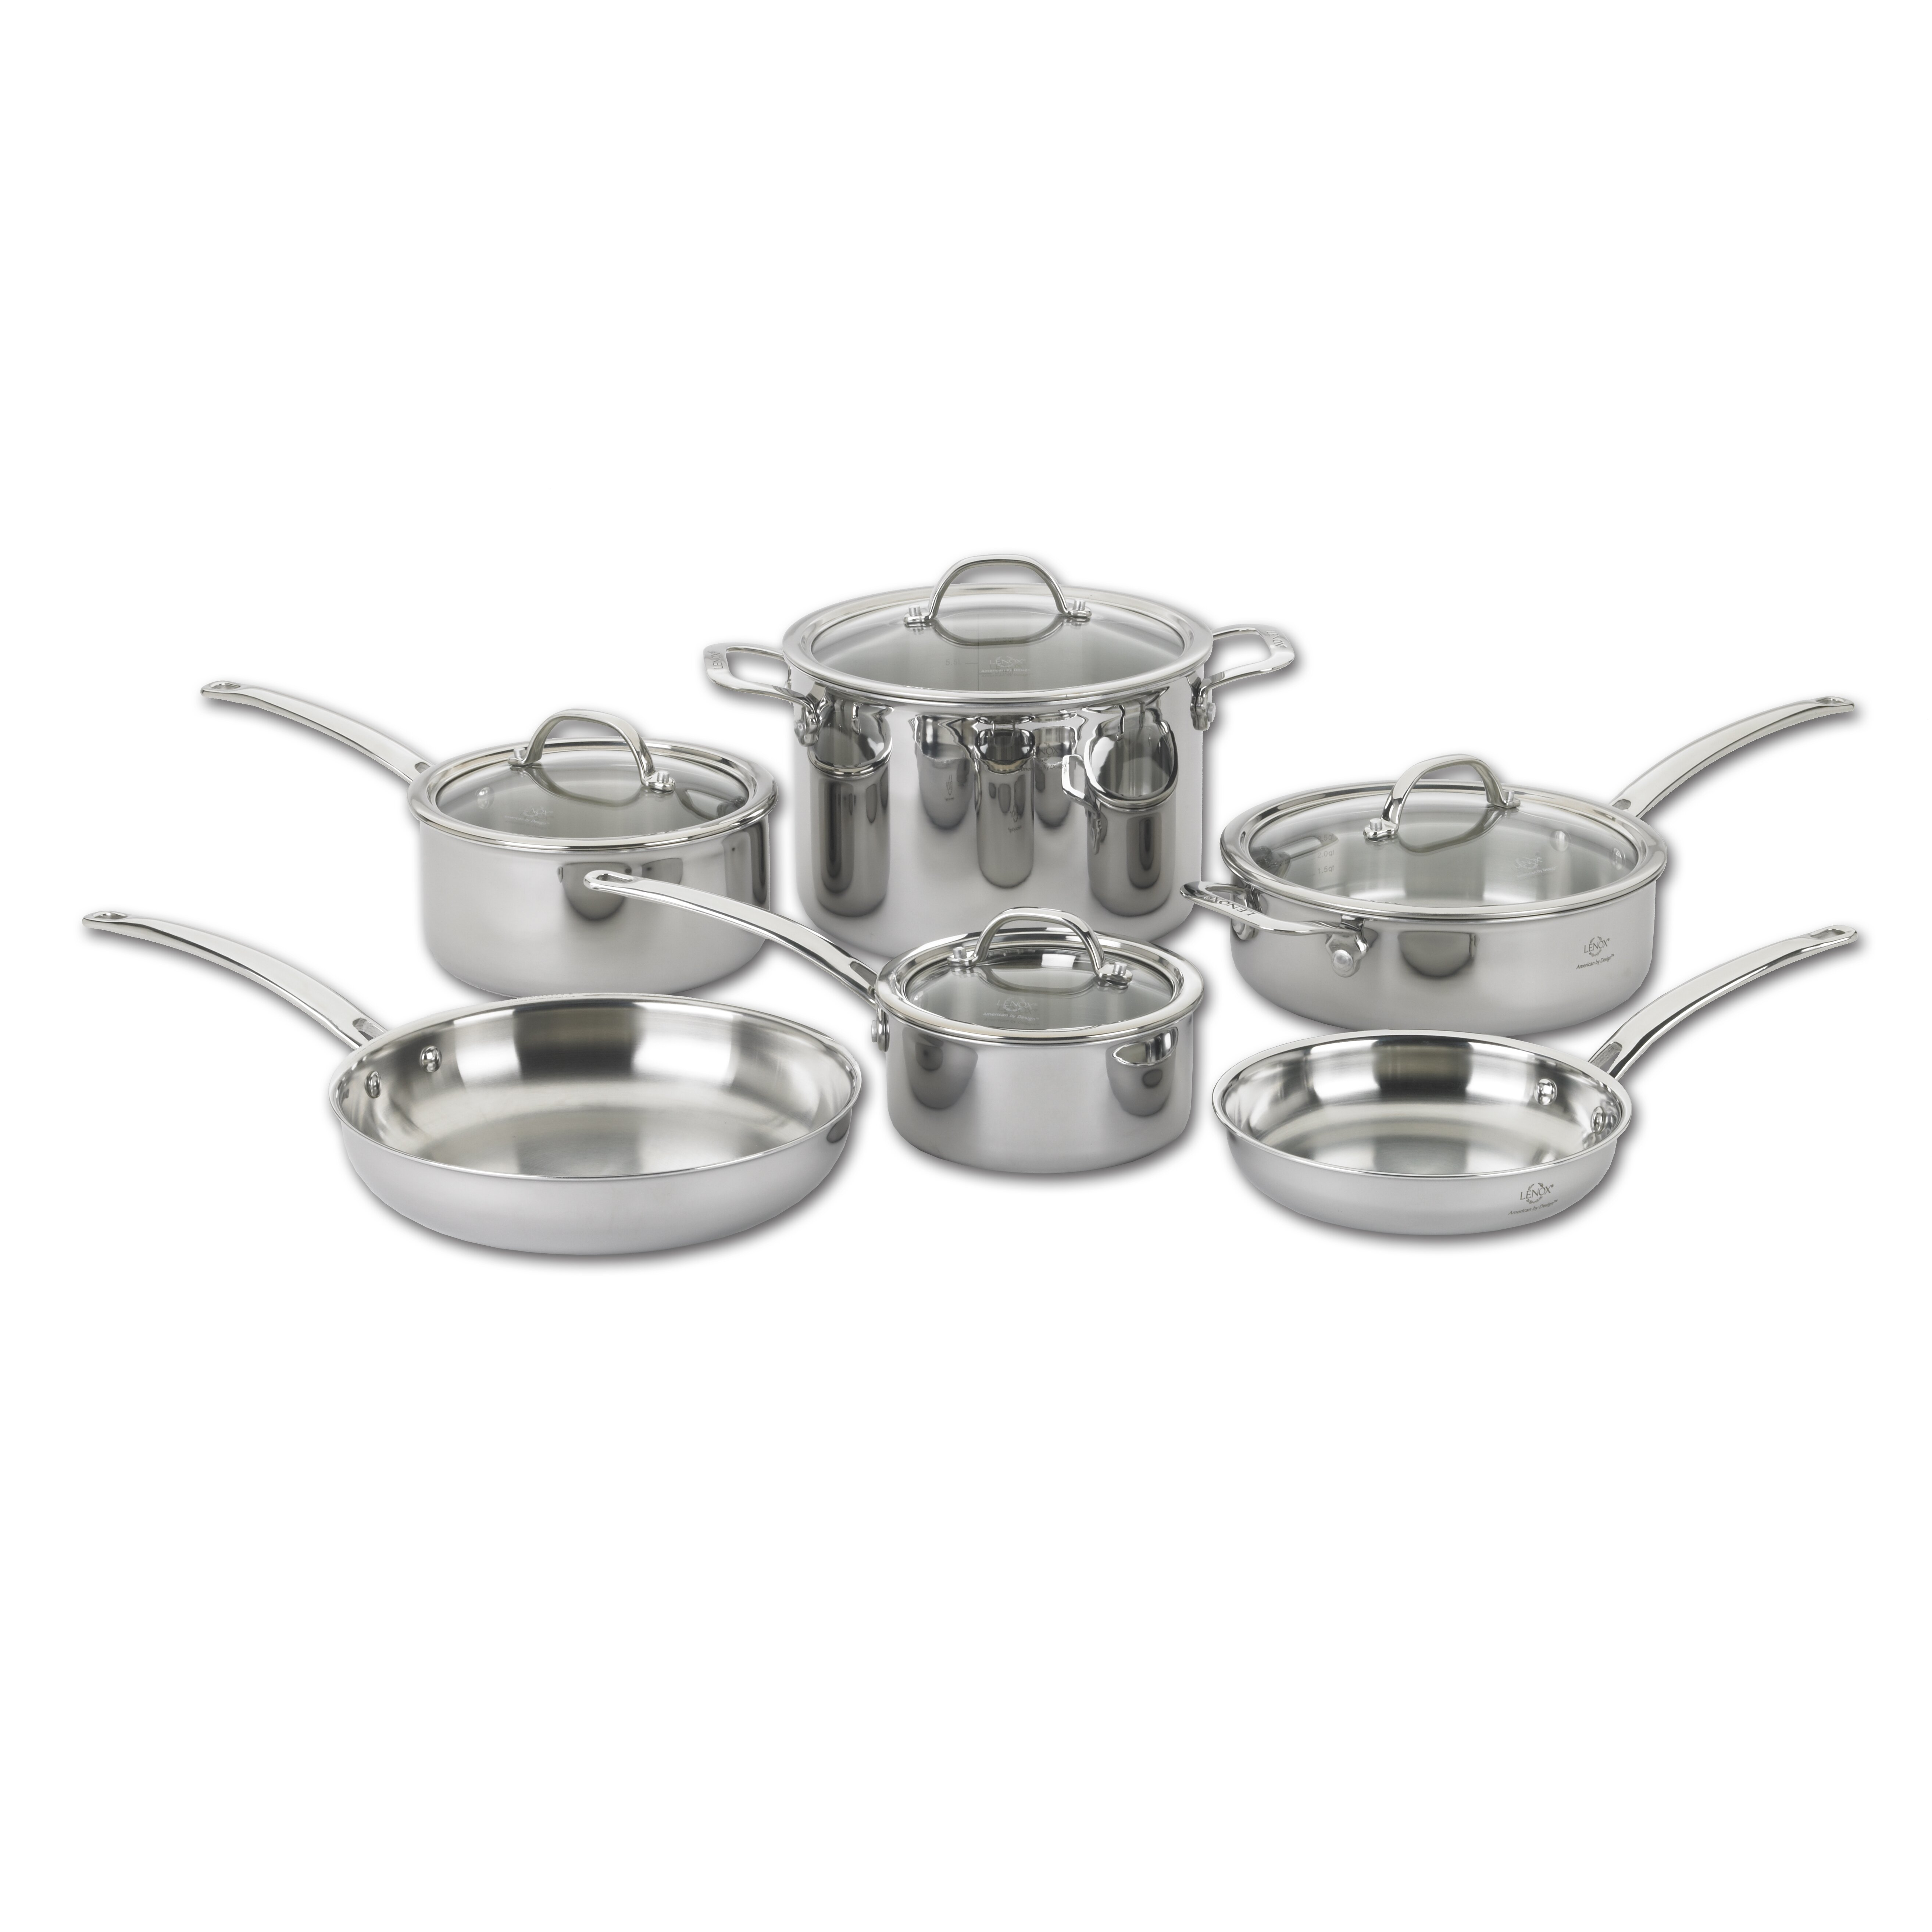 Lenox Tri Ply 10 Piece Stainless Steel Cookware Set